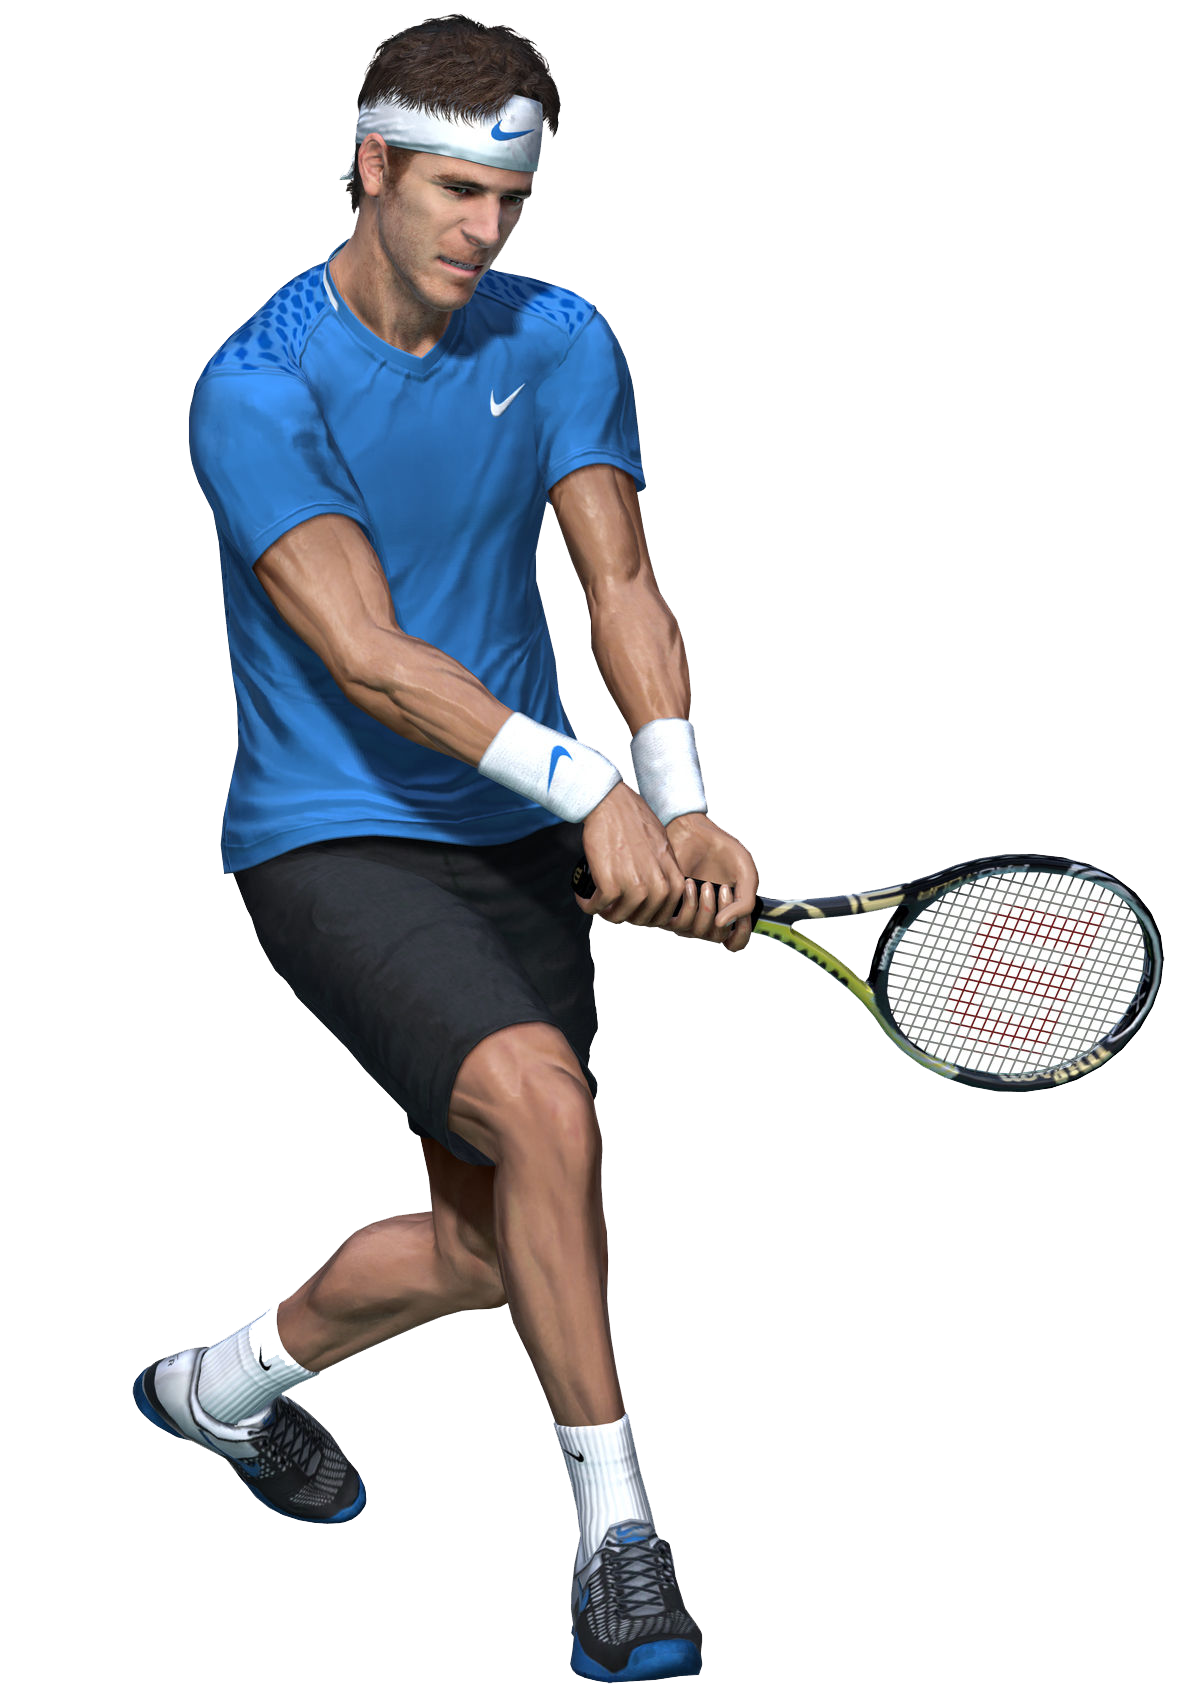 People clipart tennis. Png image purepng free